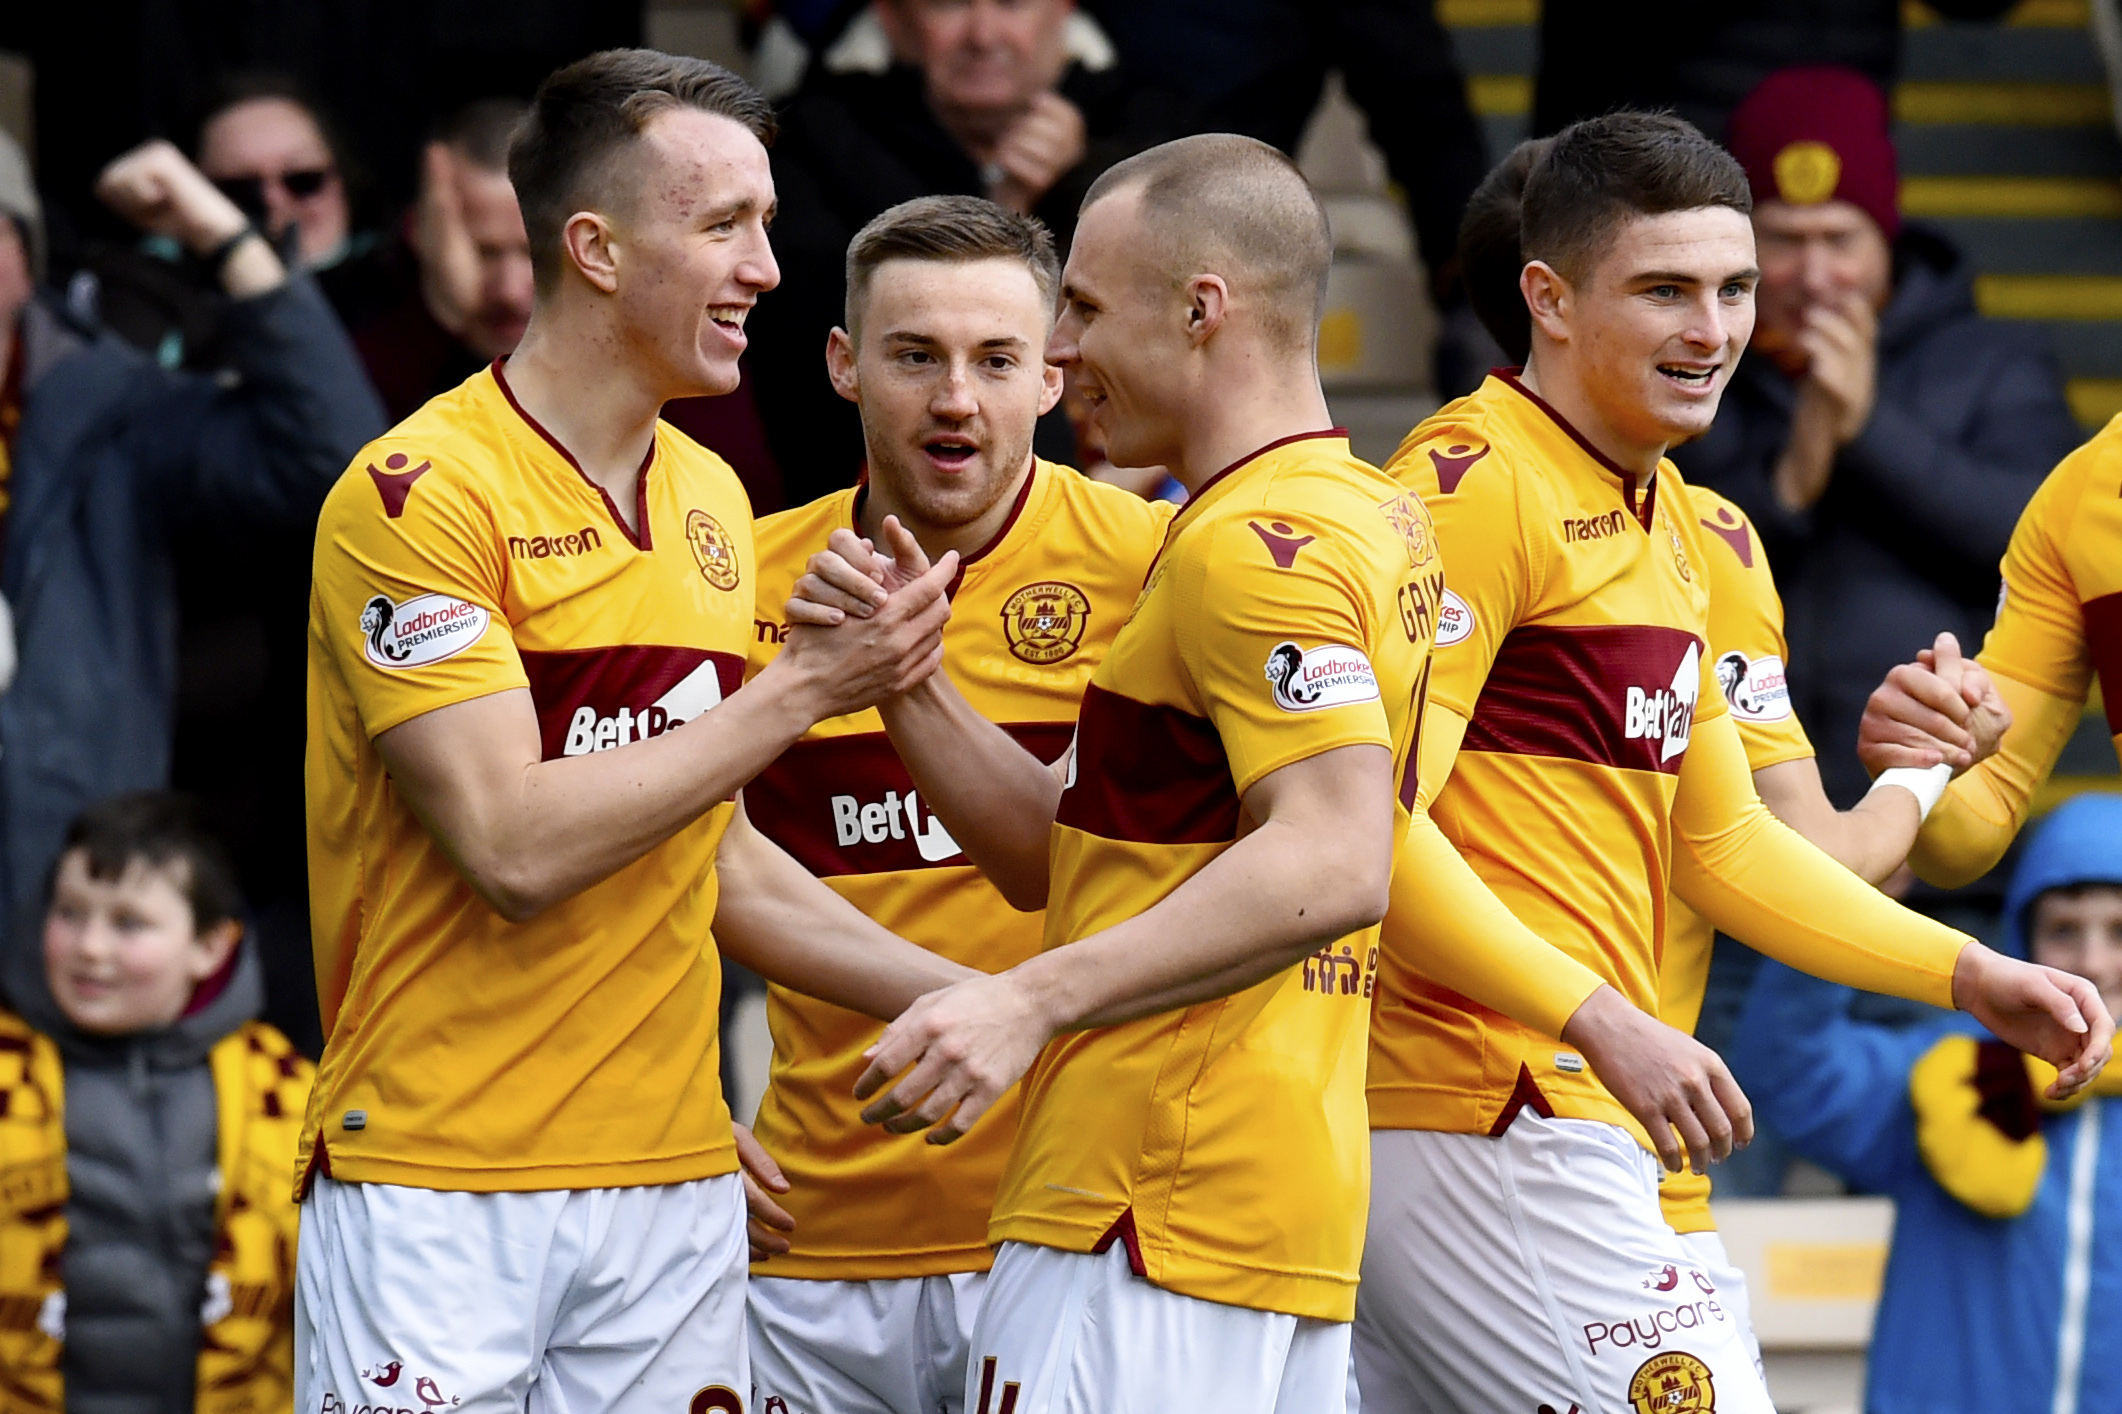 Motherwell 3 Hamilton 0: Hastie and Turnbull make the headlines again as dismal Accies swept aside at Fir Park